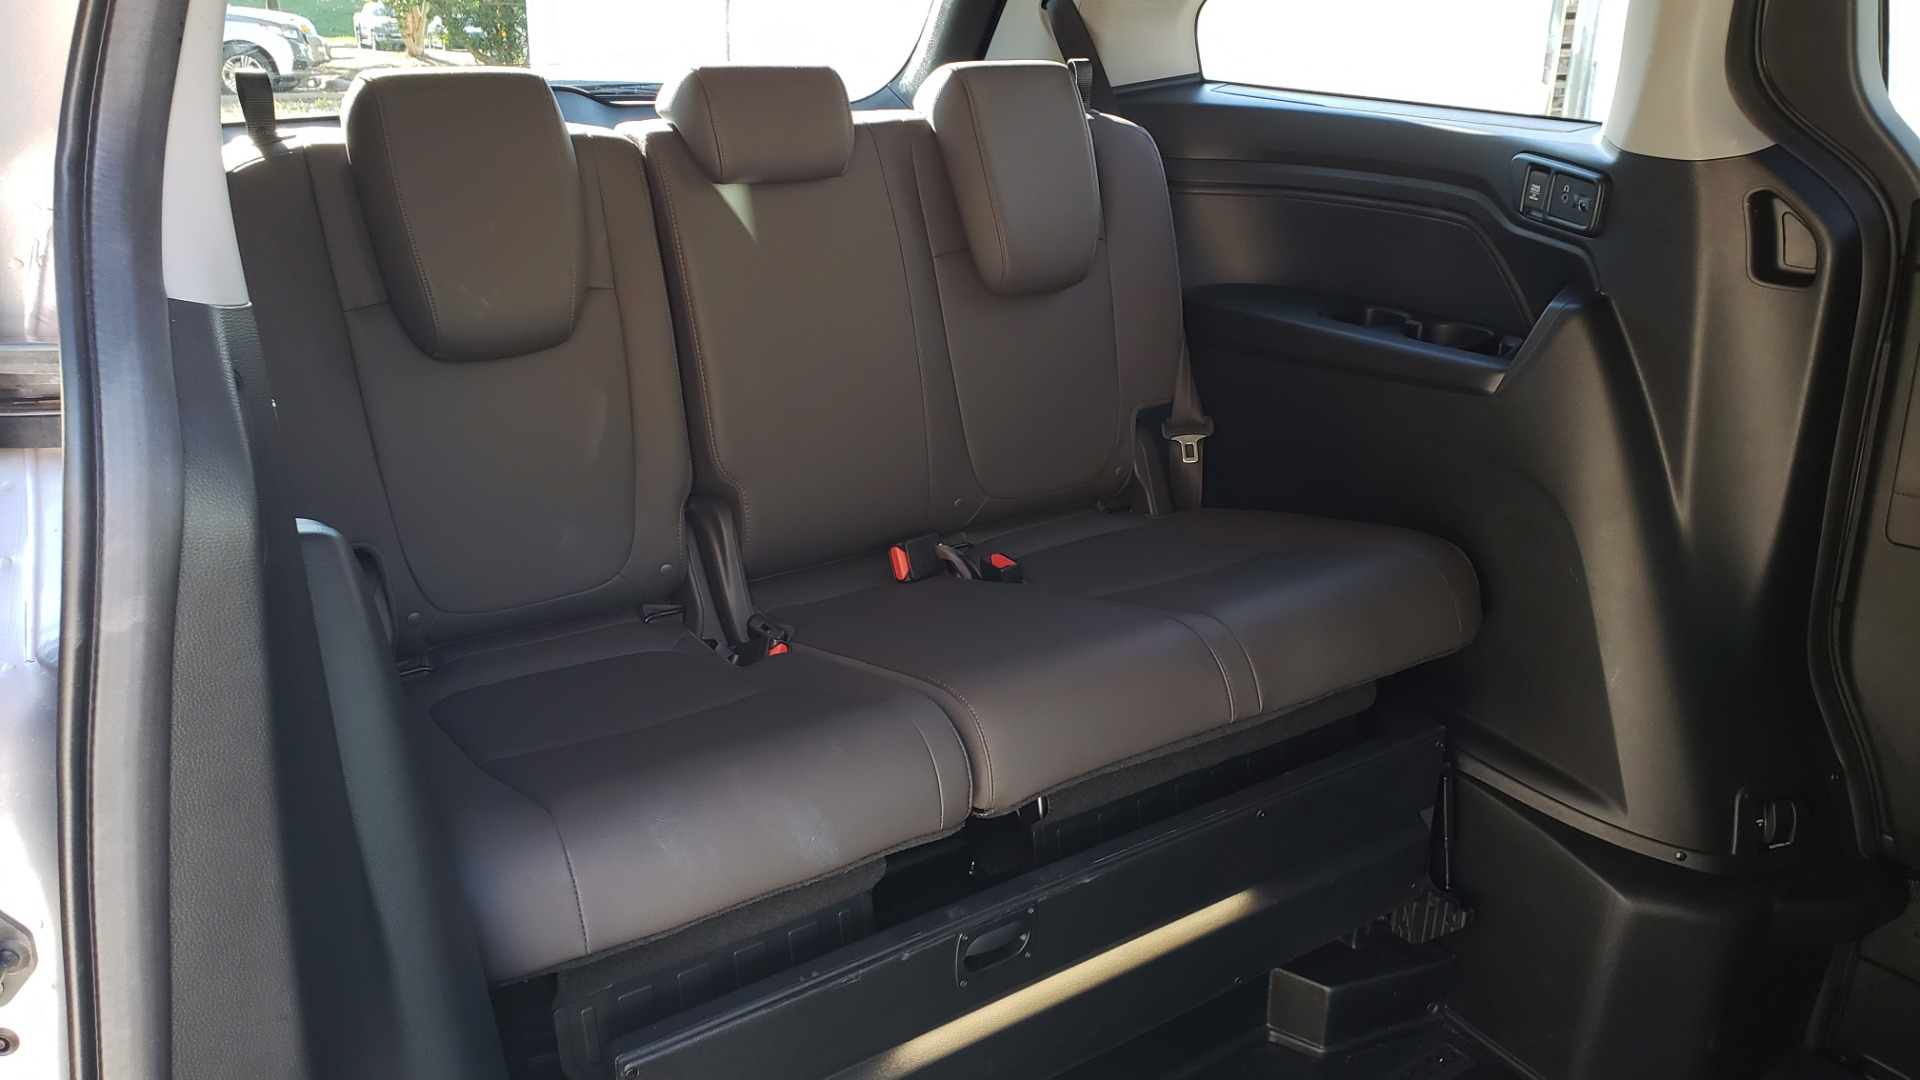 Used 2019 Honda ODYSSEY EX-L BRAUNABILITY / NAV / RES / LKA / BLUE-RAY / SUNROOF / REARVIEW for sale $49,999 at Formula Imports in Charlotte NC 28227 43